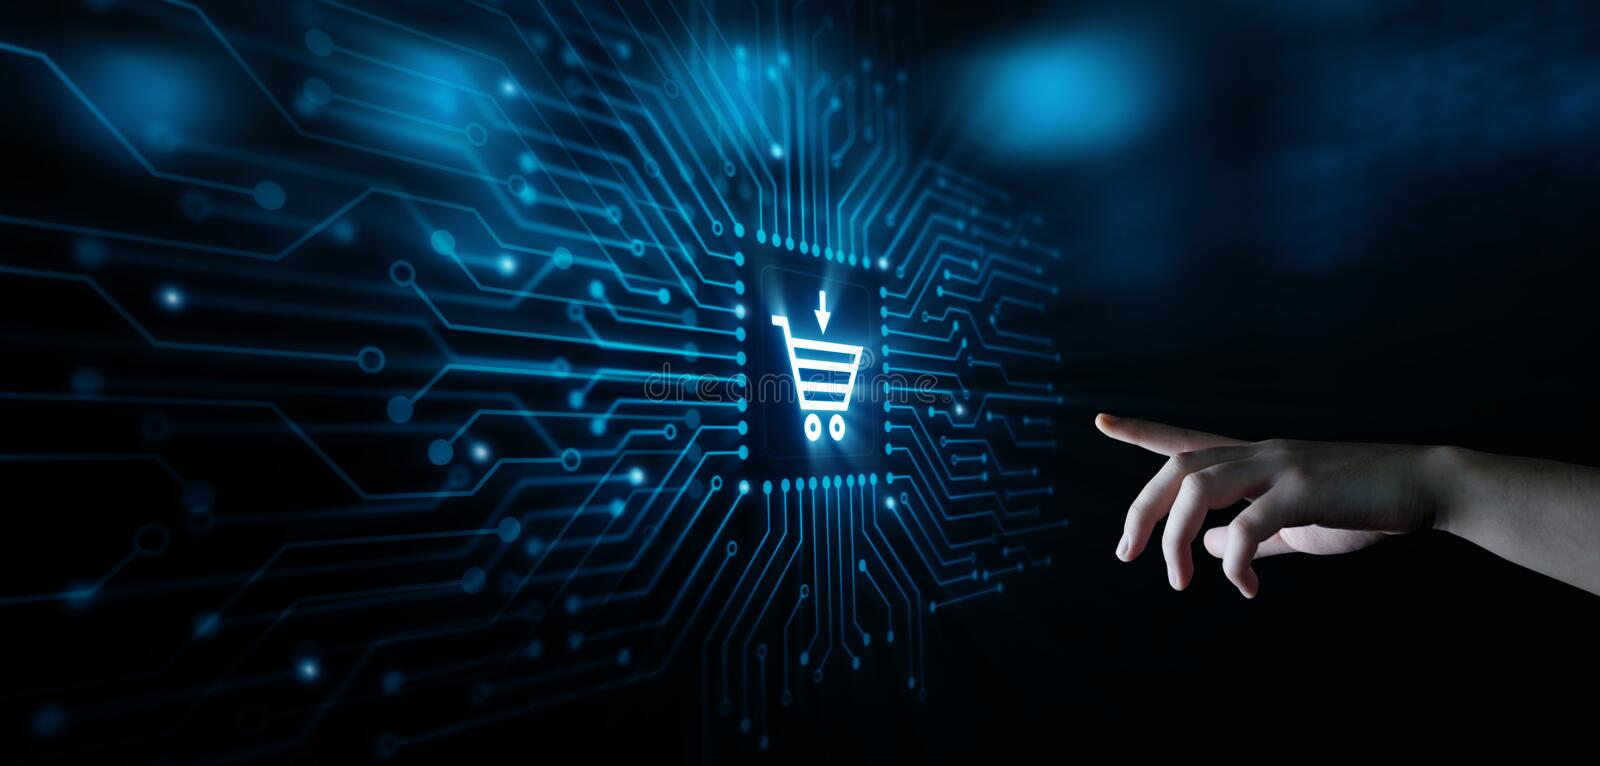 Add To Cart Internet Web Store Buy Online E-Commerce concept royalty free stock image